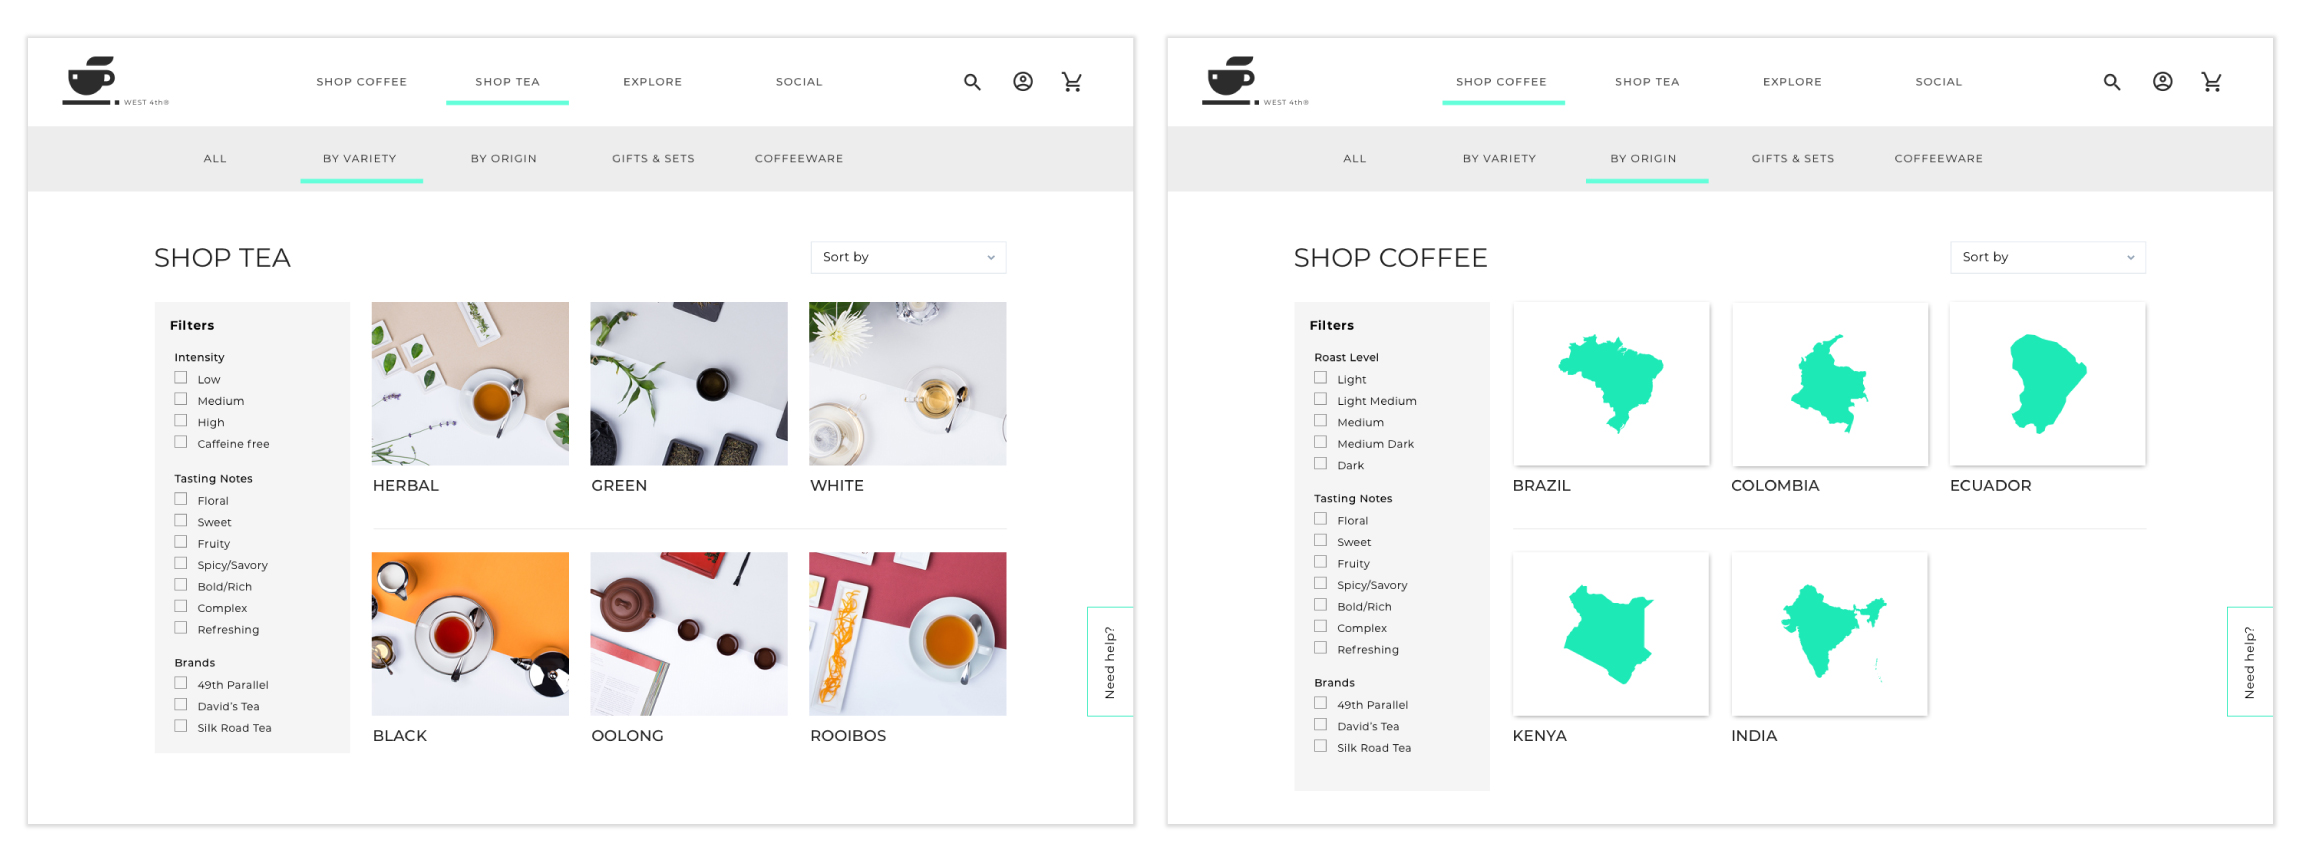 Variety and origin categorization in Coffee and Tea E-Commerce site